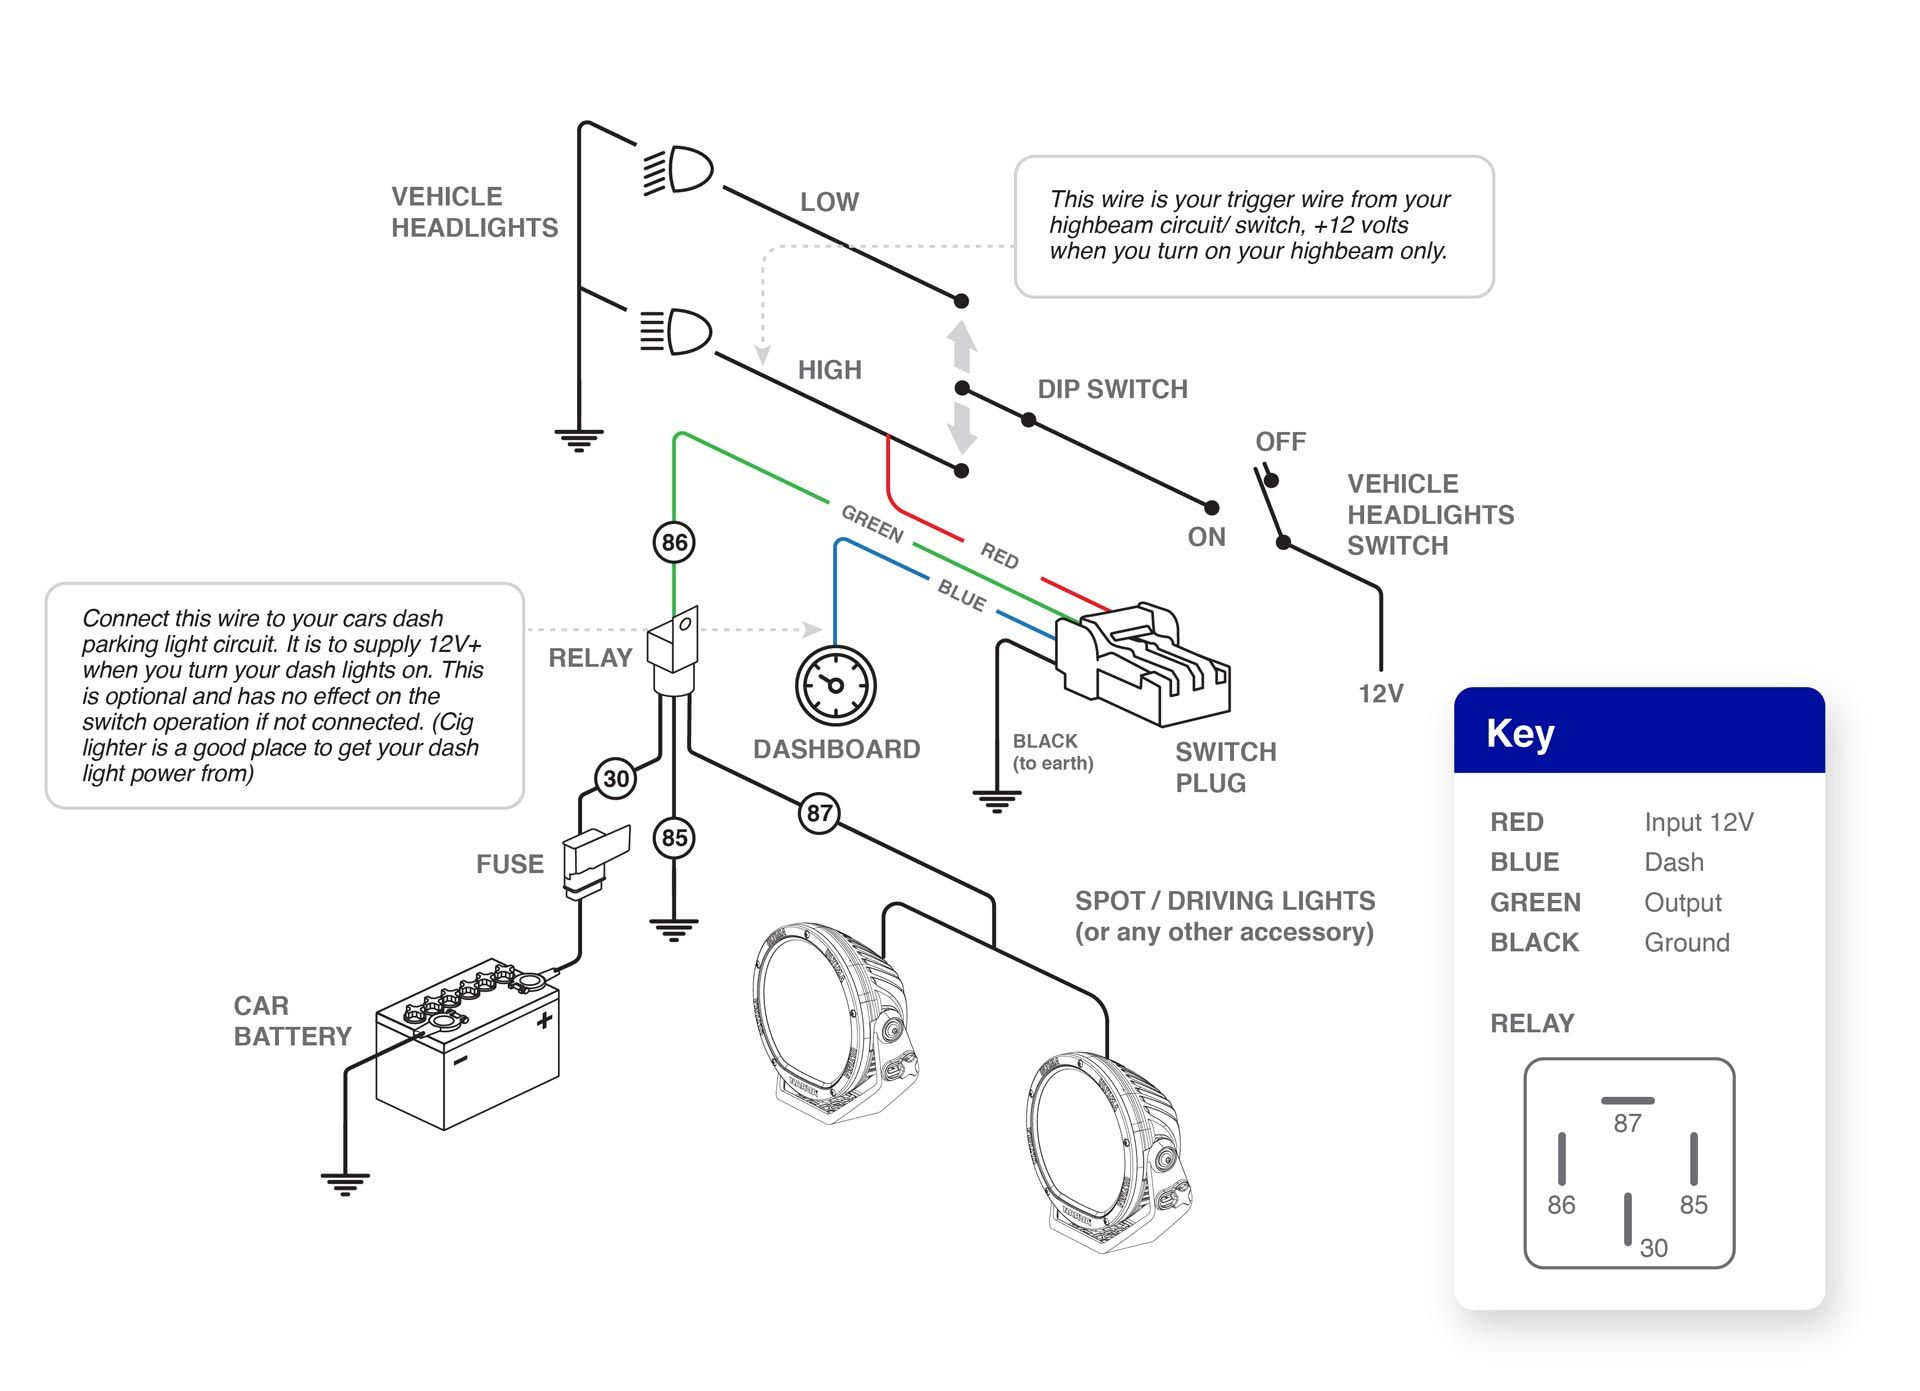 Switch wiring diagram for positive vehicles (refer to vehicle type)